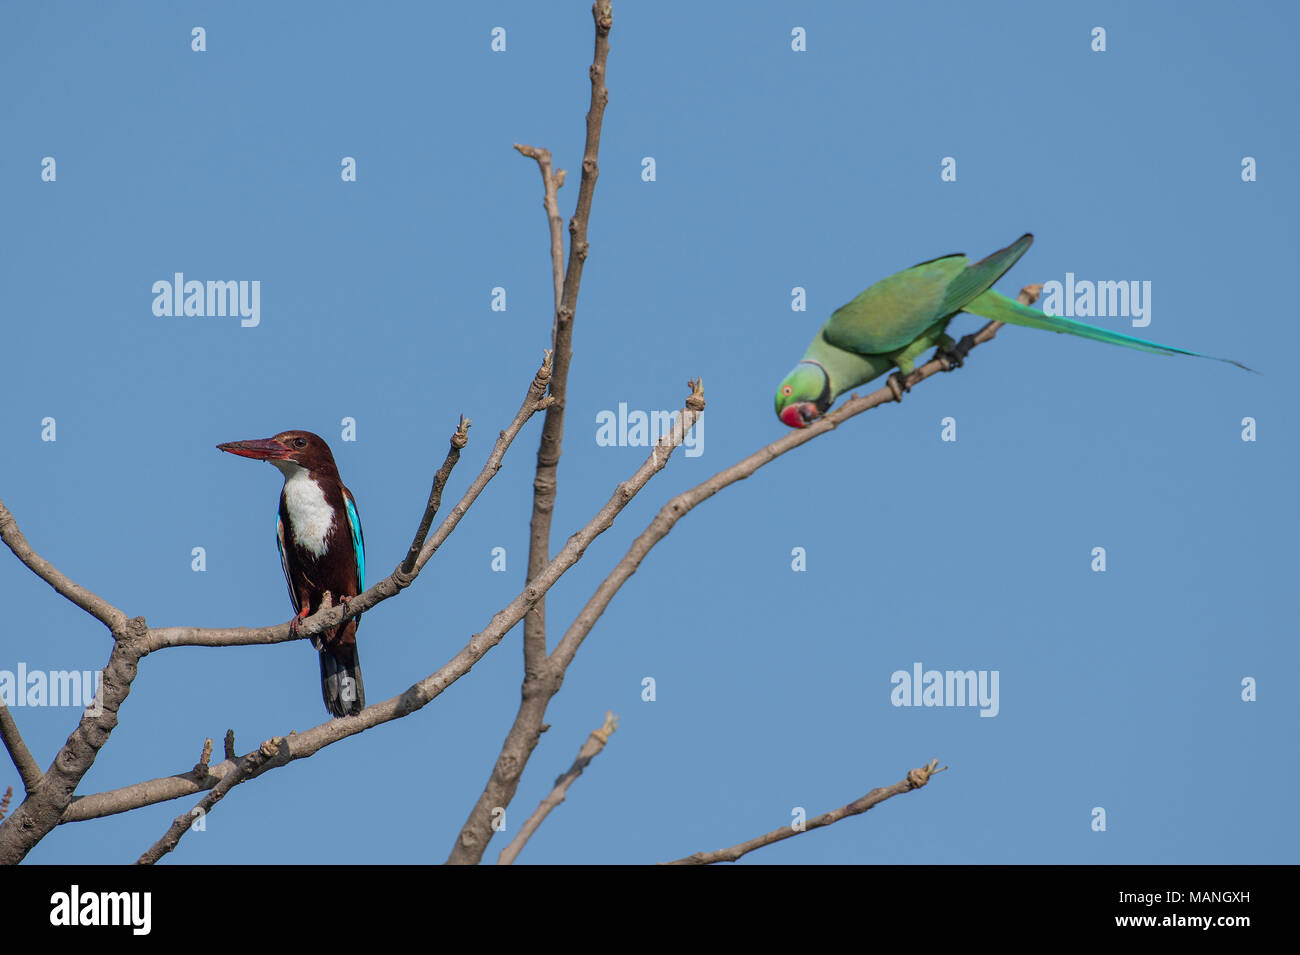 Bird: White Throated Kingfisher and Rose Ringed Parakeet  Perched on Tree - Stock Image